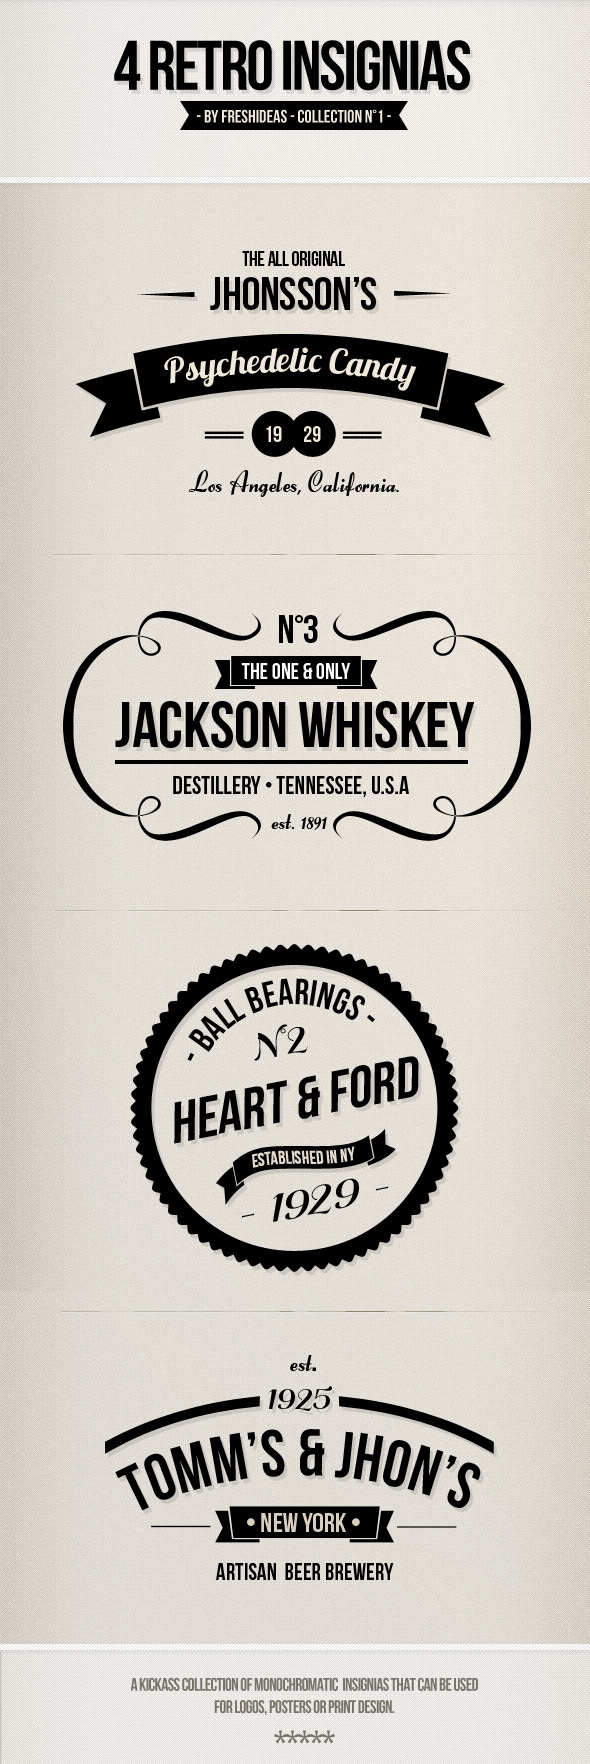 4 Retro Insignias – Badges on the Behance Network